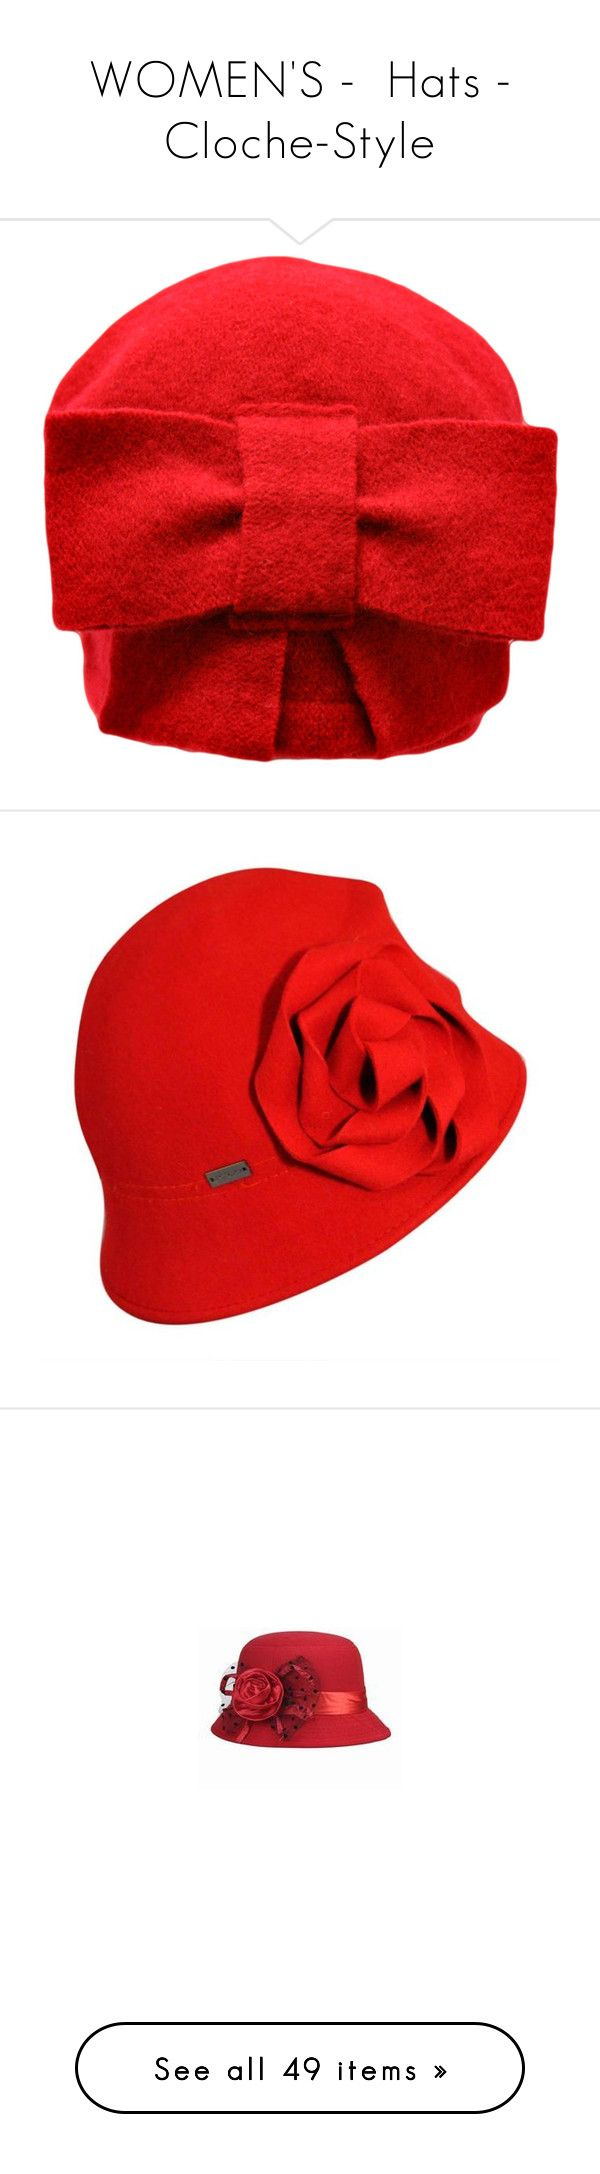 """""""WOMEN'S -  Hats - Cloche-Style"""" by kuropirate on Polyvore featuring accessories, hats, red, fisherman bucket hat, wool hat, fisherman hat, red bucket hat, bucket hat, scarlet and floral print hat"""